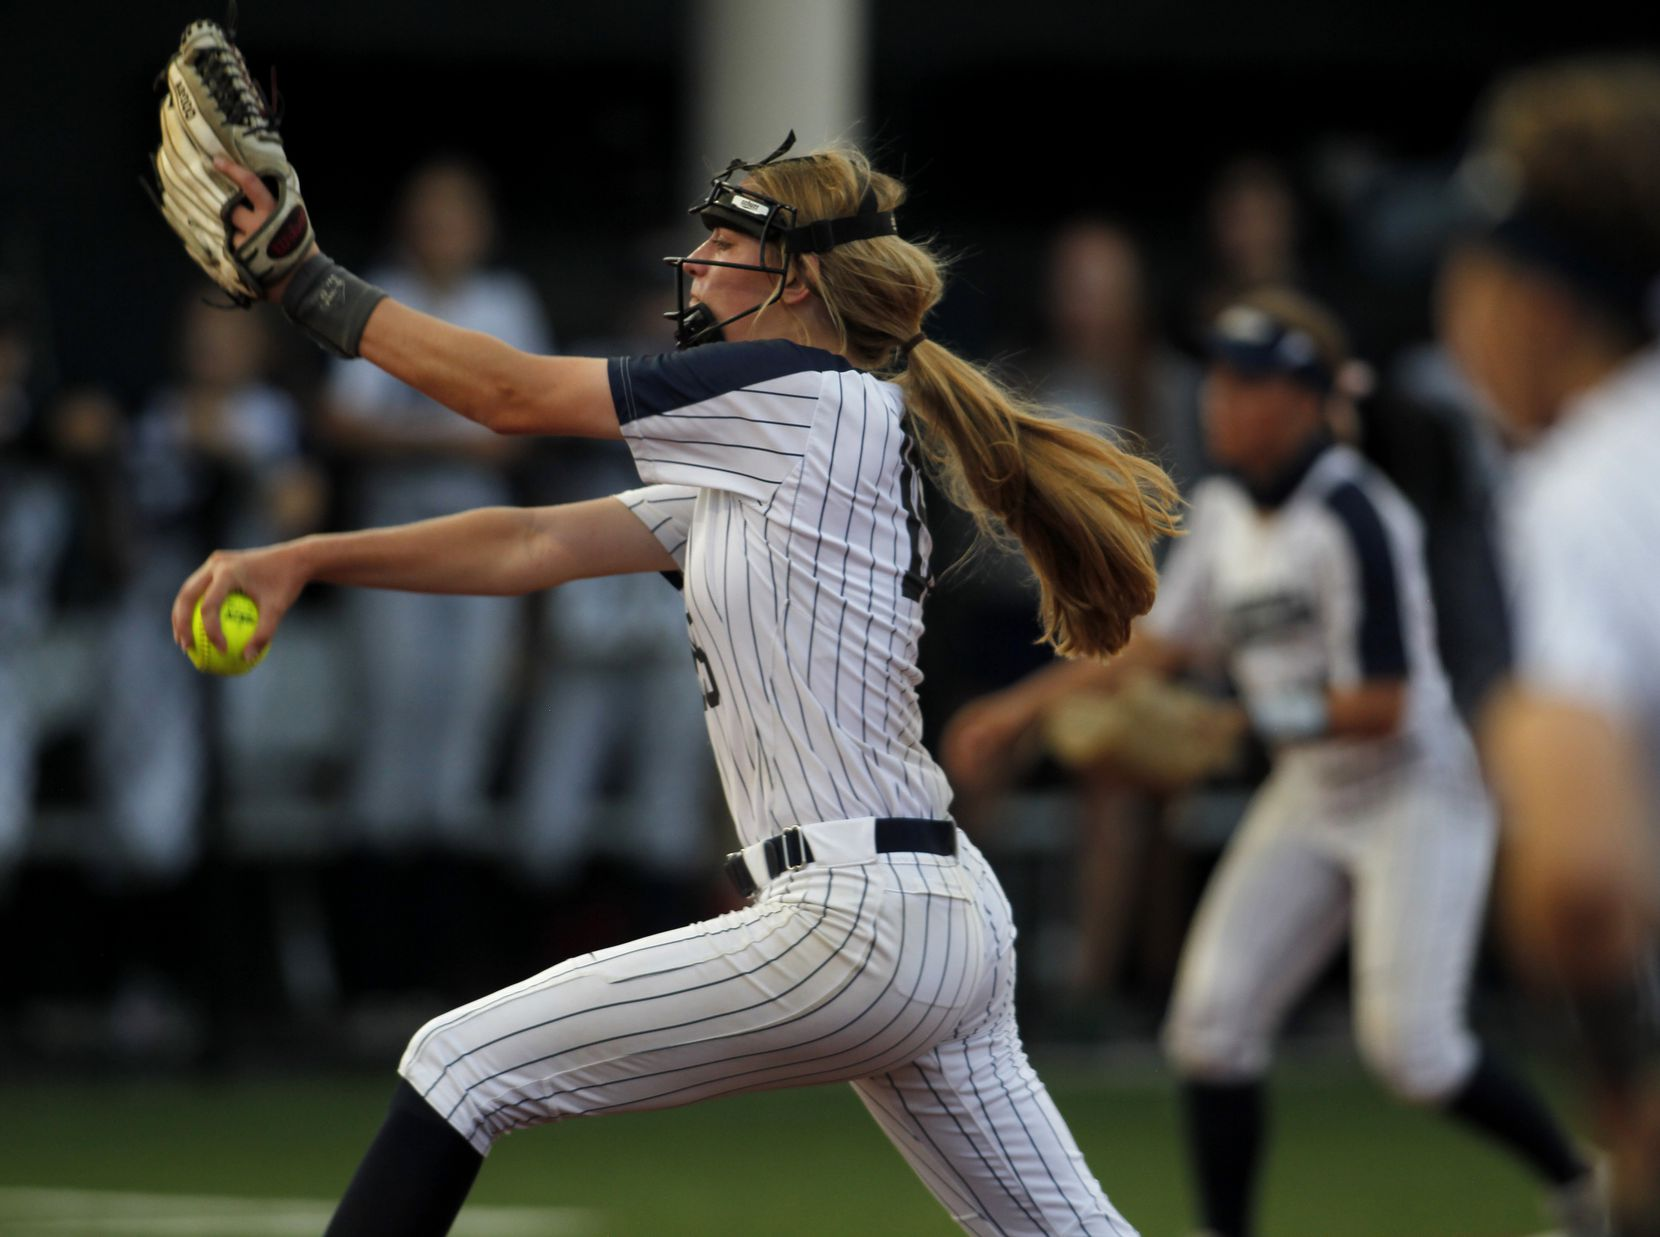 Flower Mound pitcher Landrie Harris (15) delivers a pitch to a Deer Park batter during the top of the 2nd inning of play. The two teams played their UIL 6A state softball semifinal game at Leander Glenn High School in Leander on June 4, 2021. (Steve Hamm/ Special Contributor)